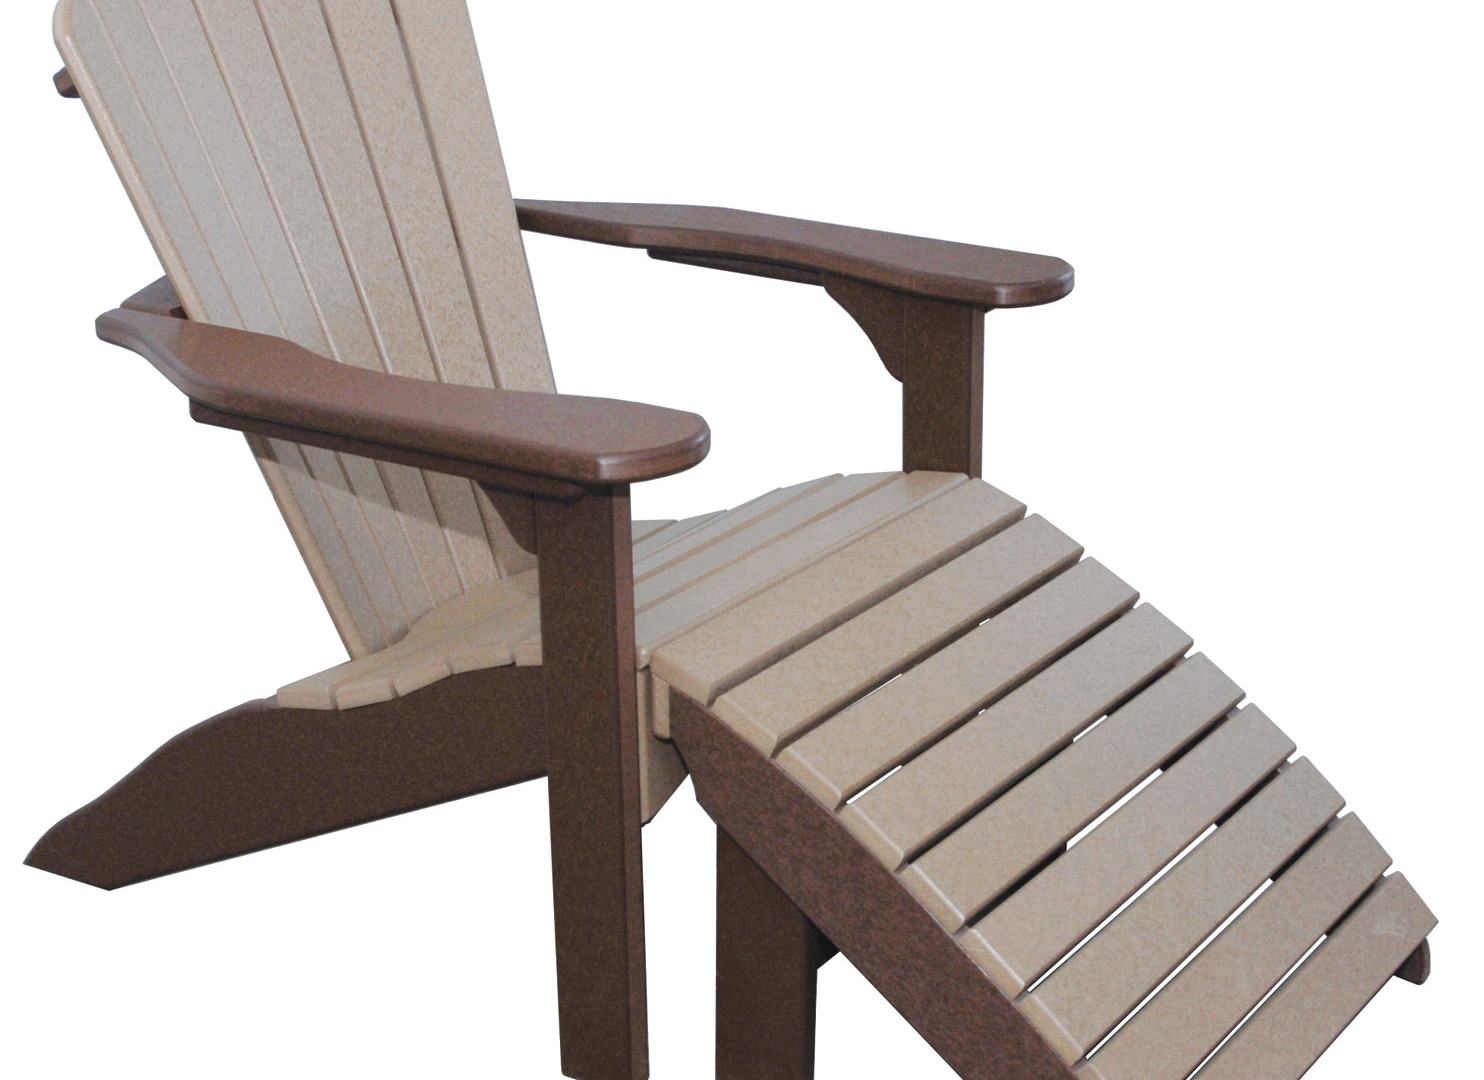 Daisy Adirondack Chair with Footstool